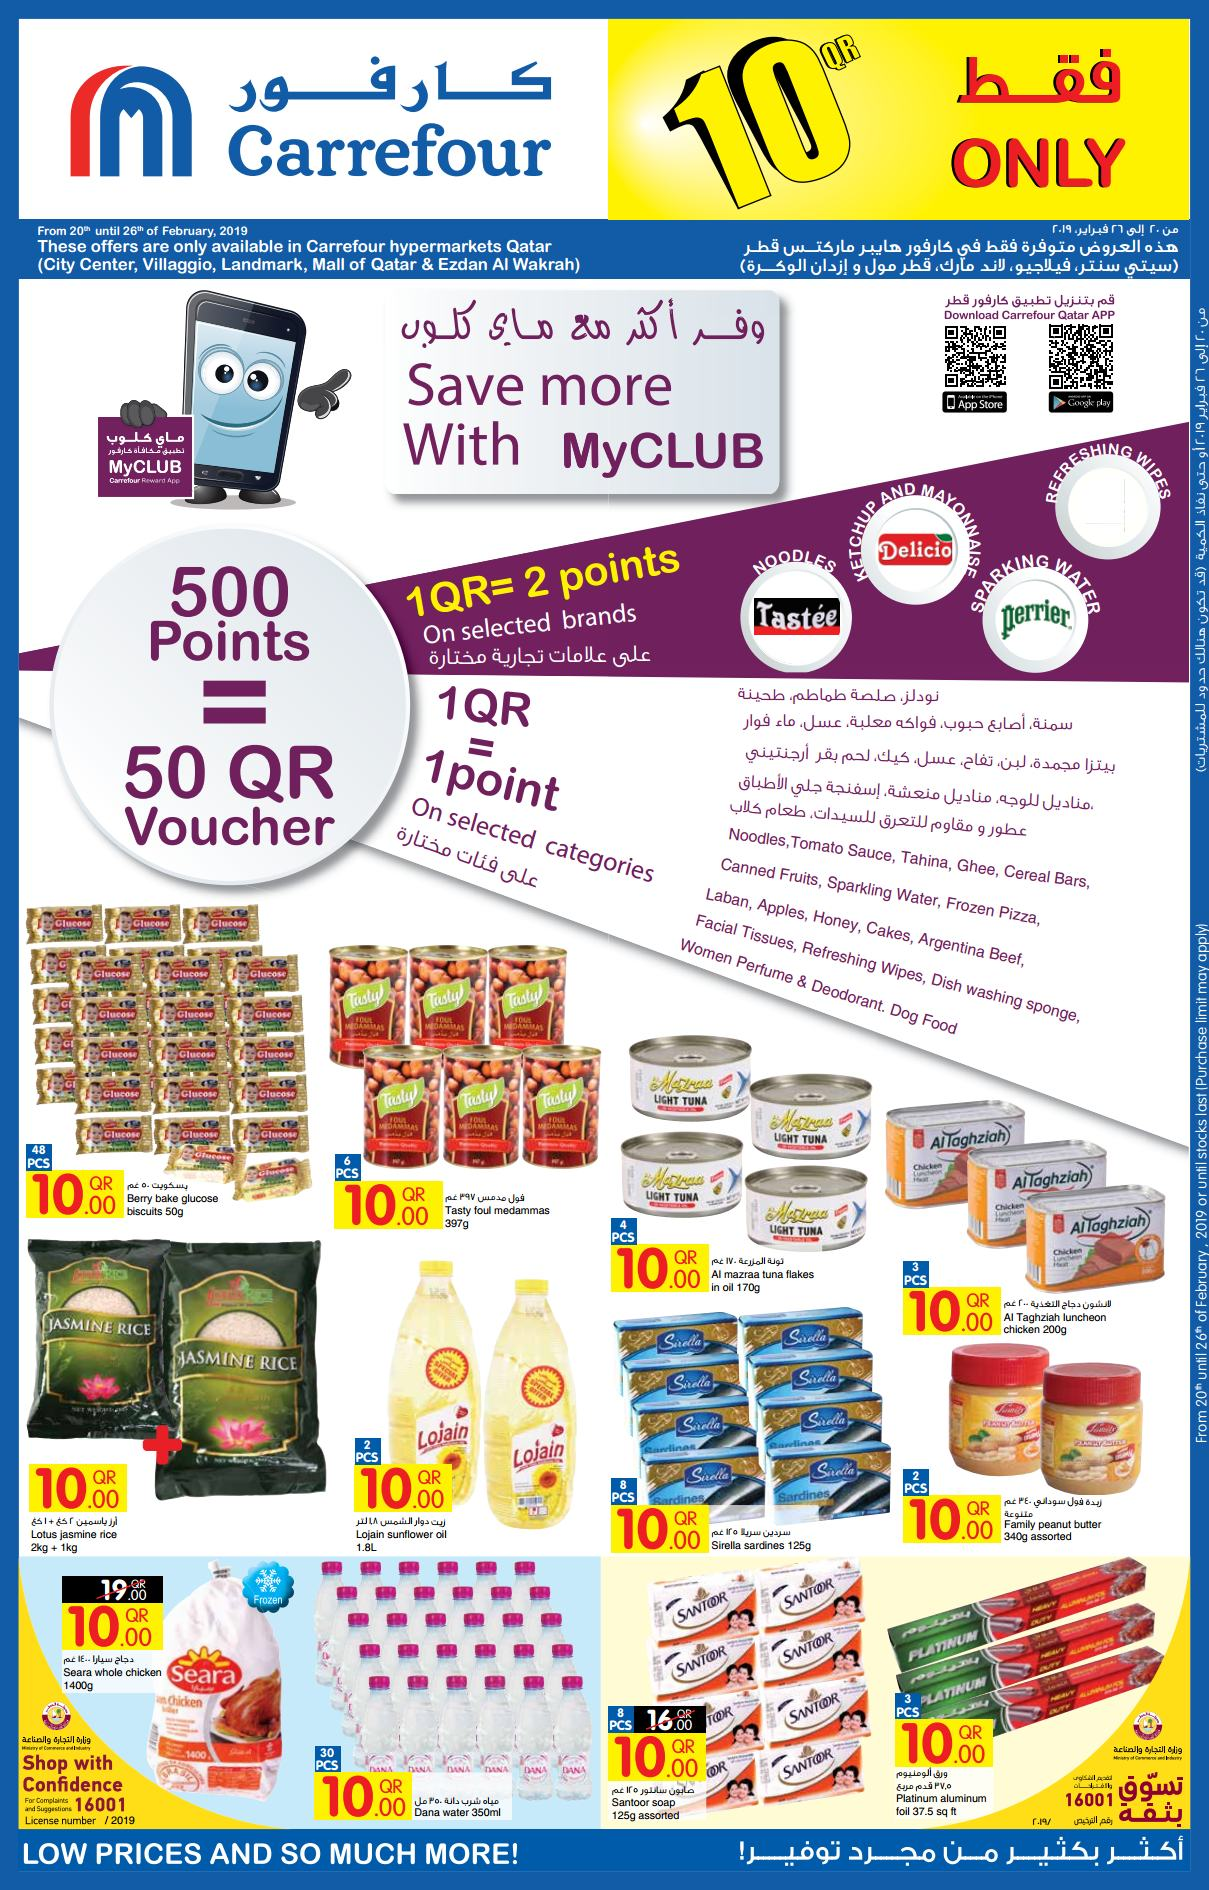 Carrefour 10QR Offer till 26-02